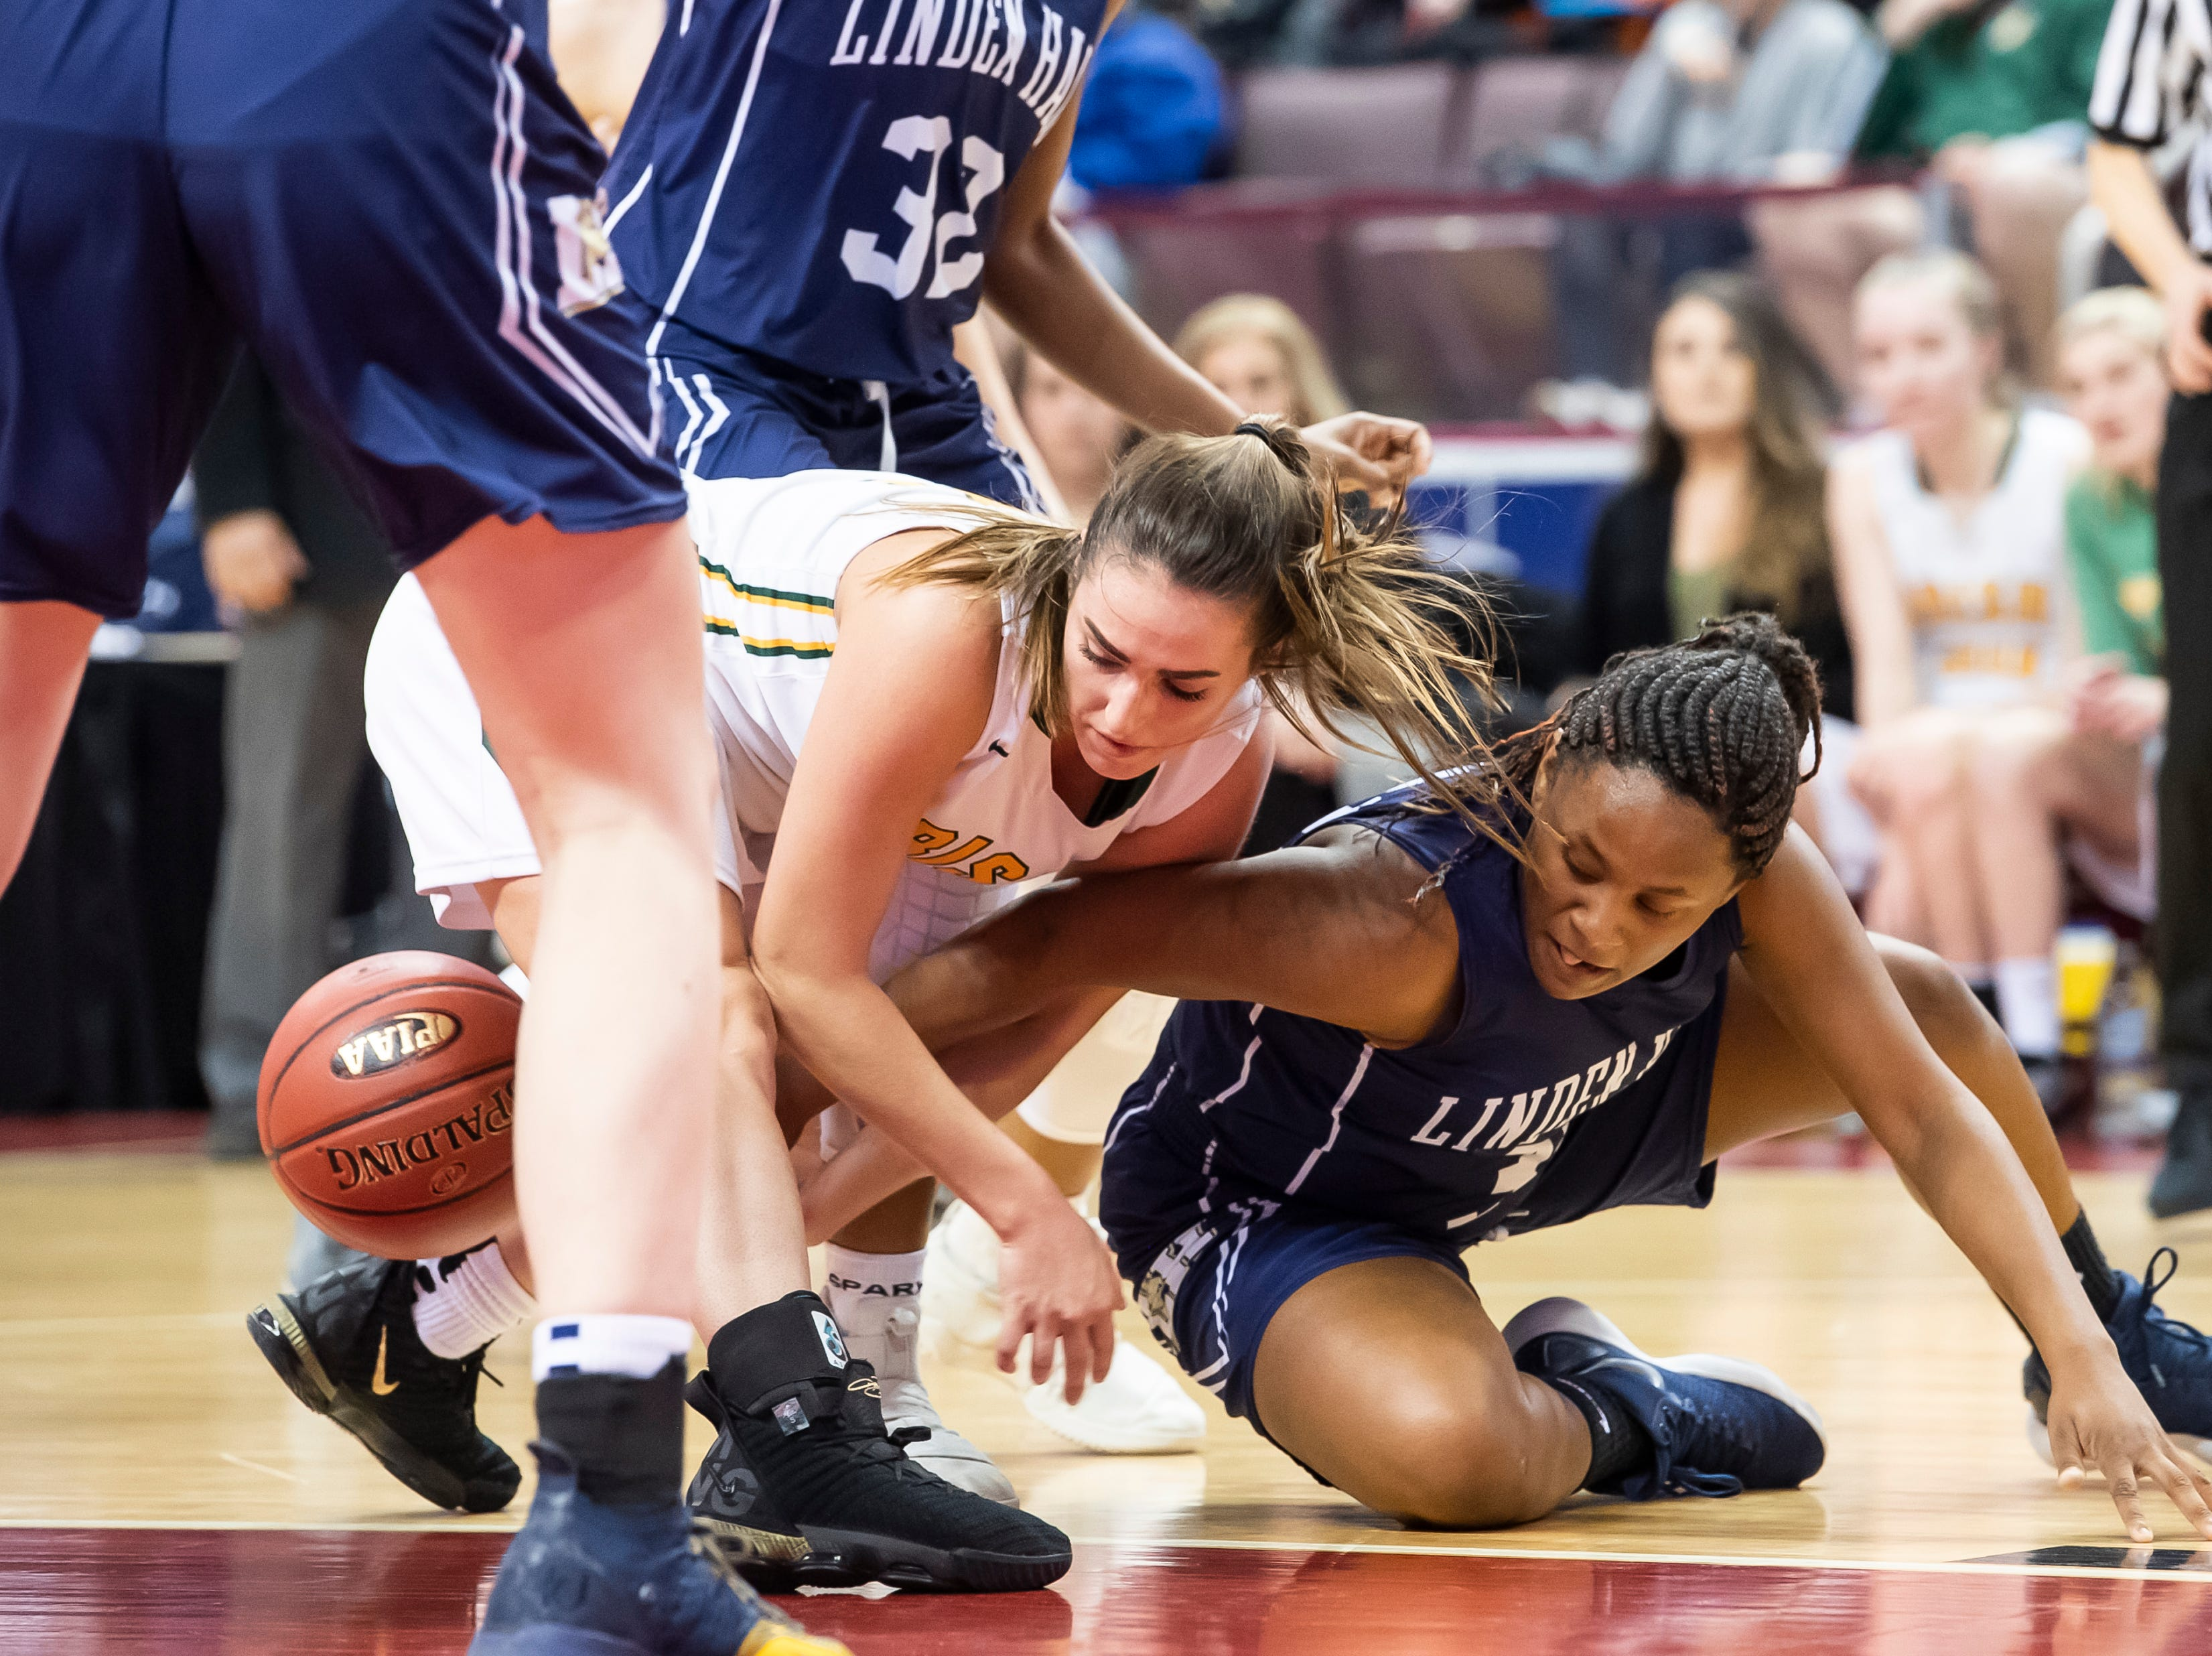 York Catholic's Gina Citrone and Linden Hall's Tahri Phillips fight for possession during the District 3 2-A girls championship game against Linden Hall at the Giant Center in Hershey Tuesday, Feb. 26, 2019. The Fighting Irish fell 56-27.